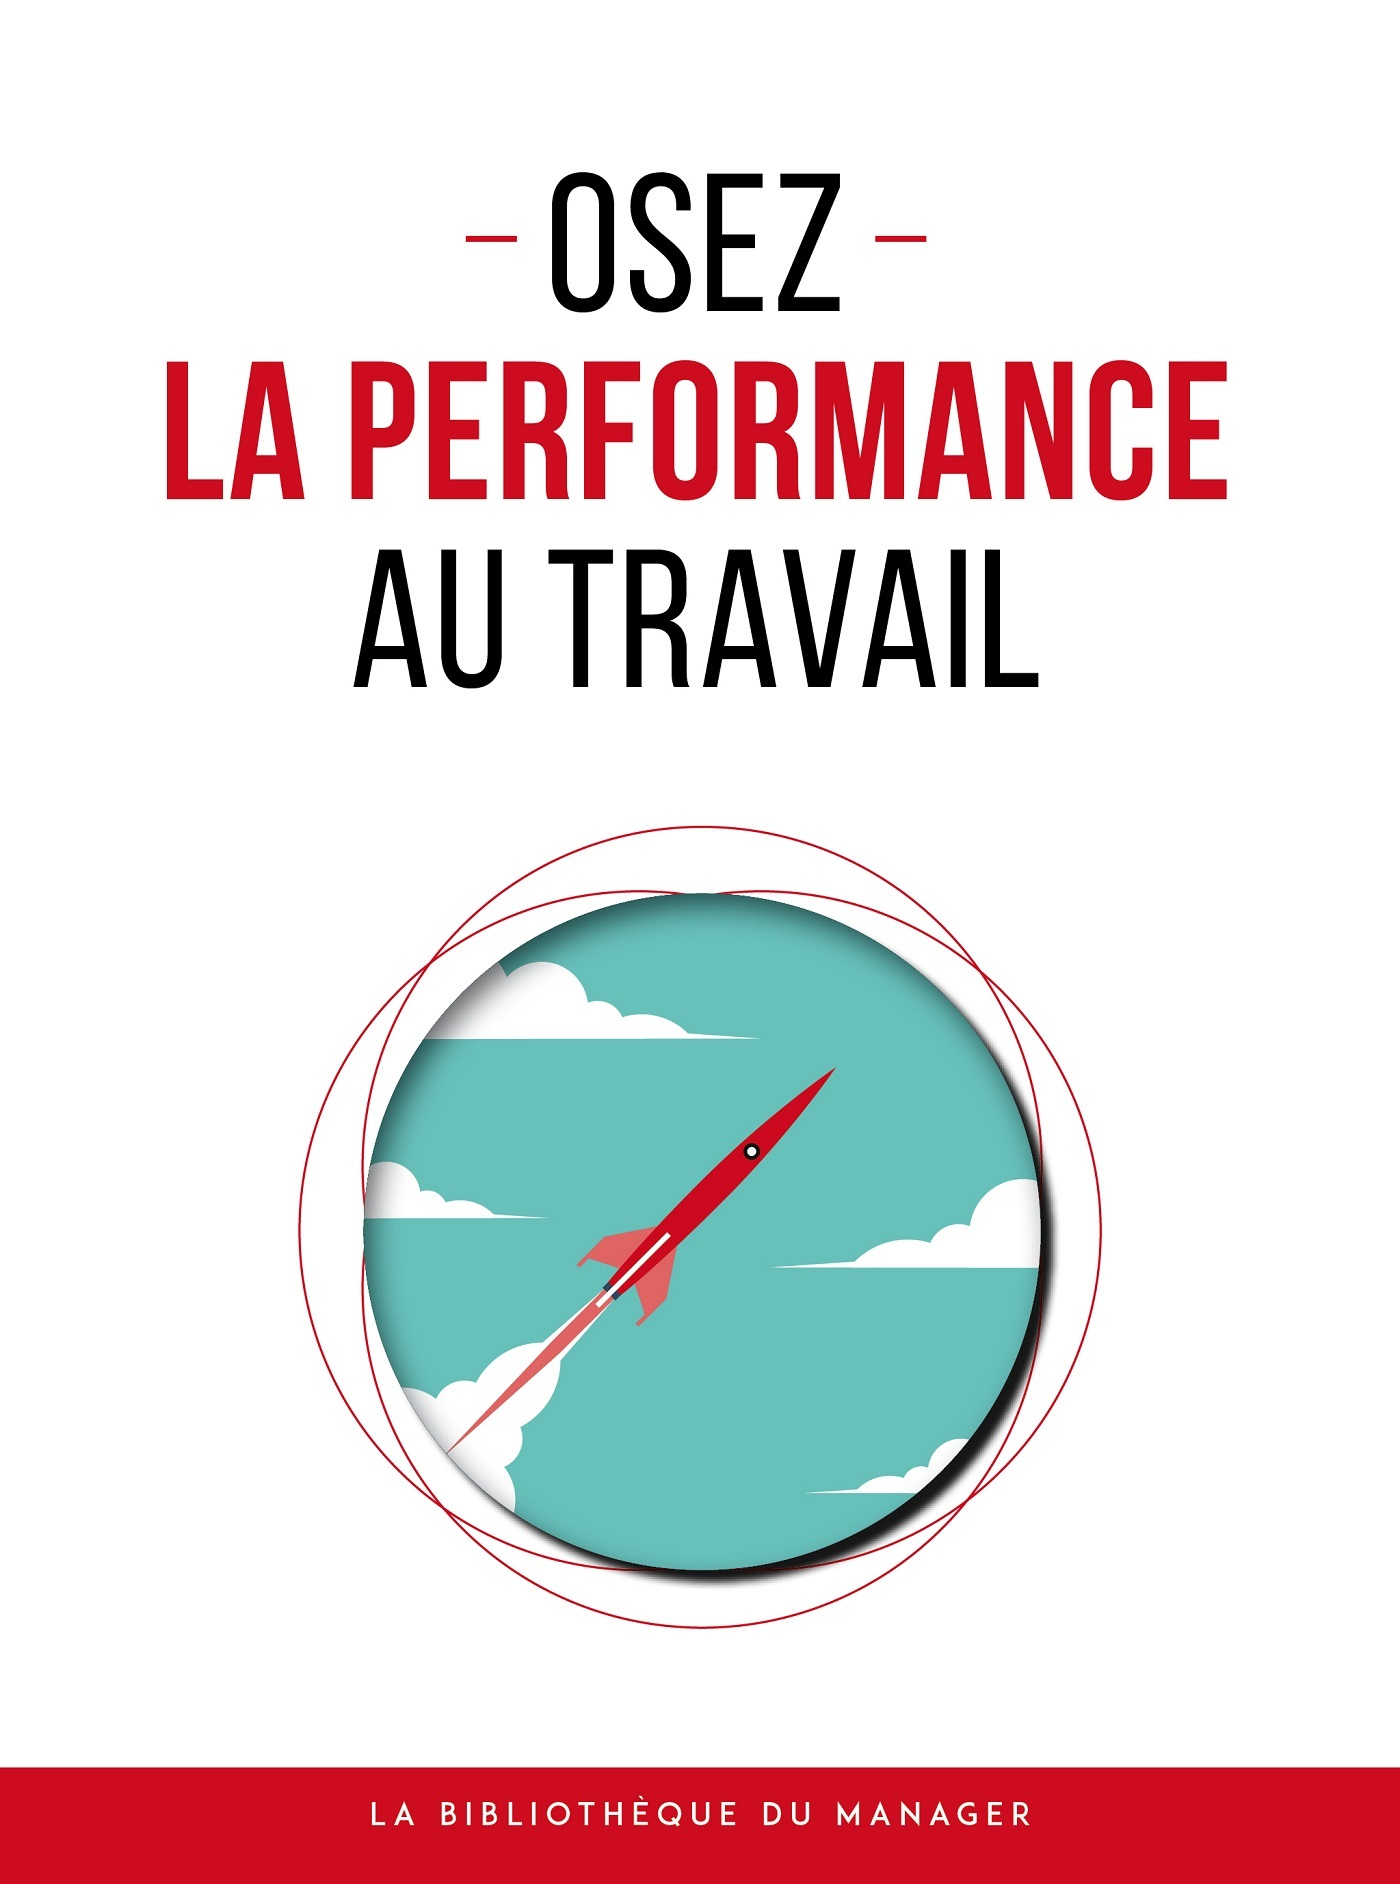 OSEZ LA PERFORMANCE